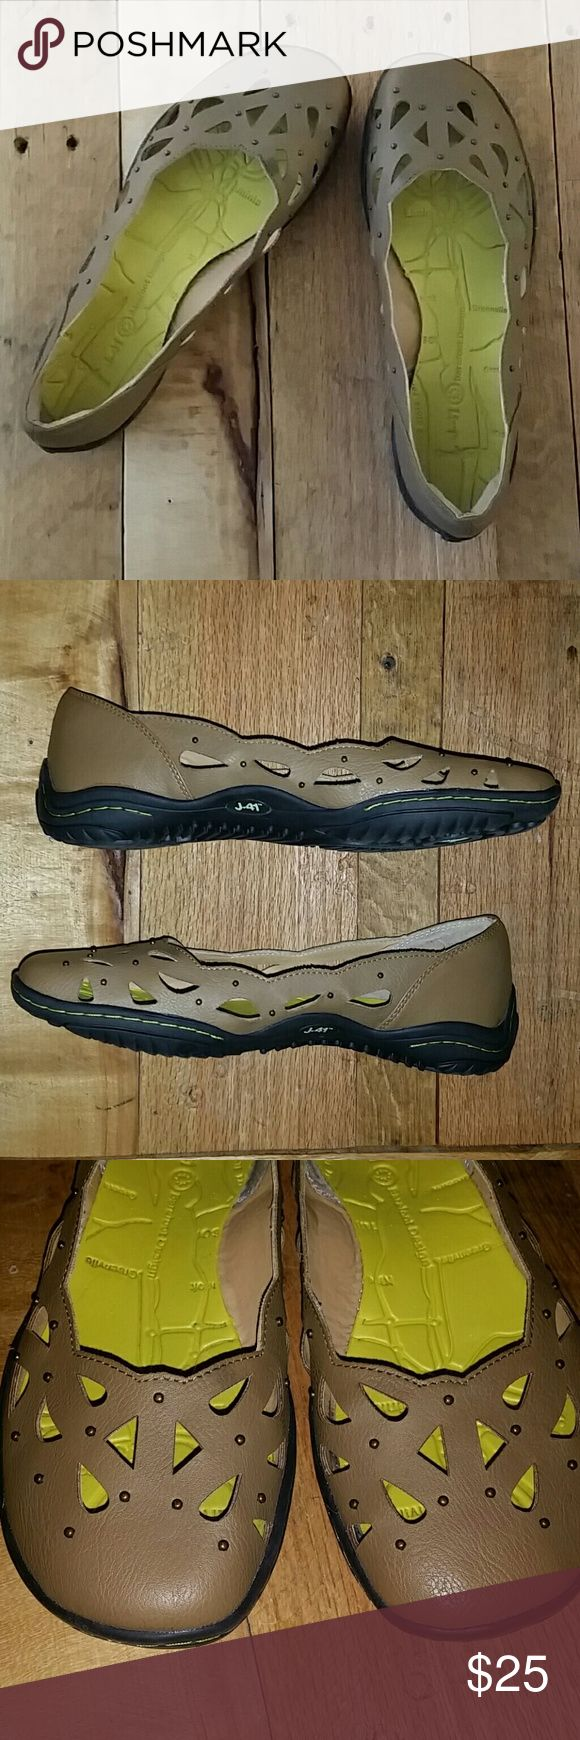 J 41 Barefoot Design tan flats Excellent condition.  Worn once. Soles are perfect. Extremely comfortable and cute too. J 41 Shoes Flats & Loafers